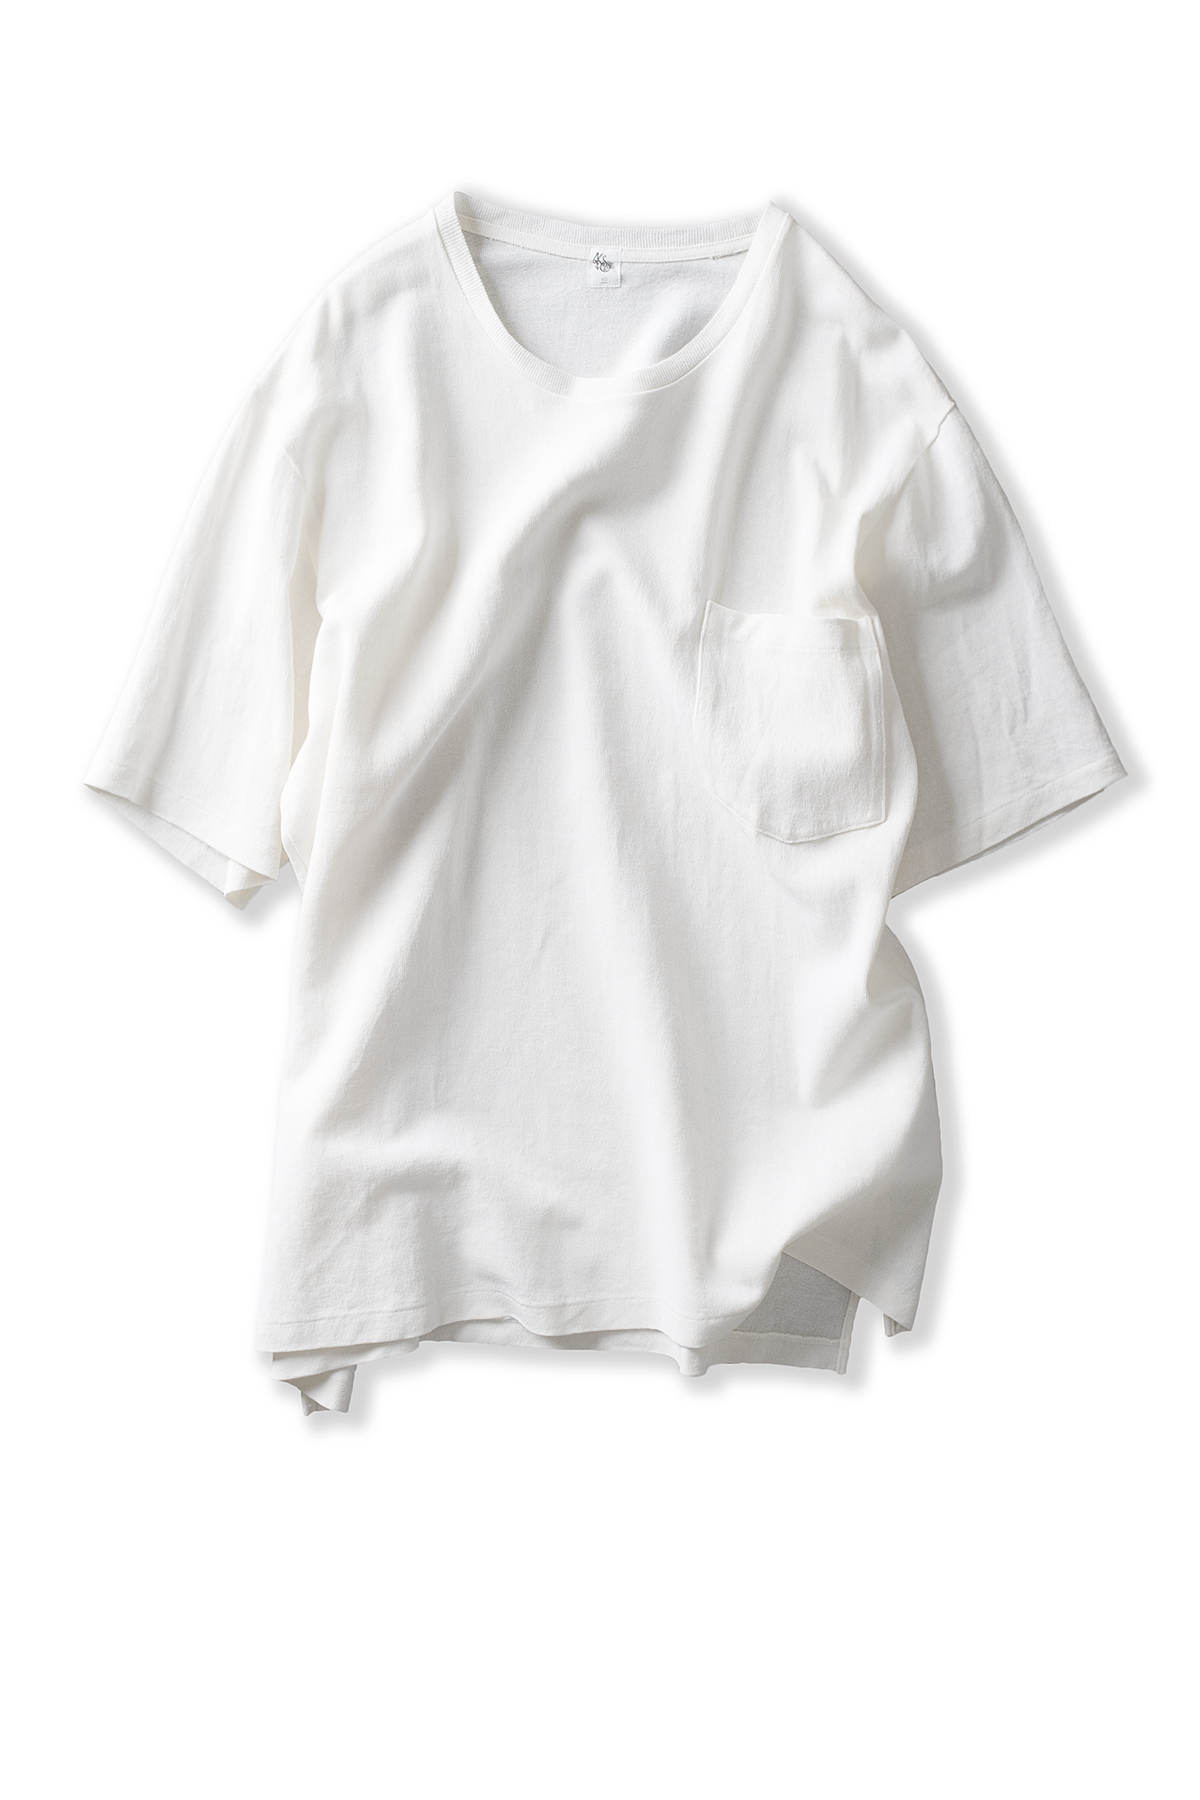 Kaptain Sunshine : Pocket Tee (White)